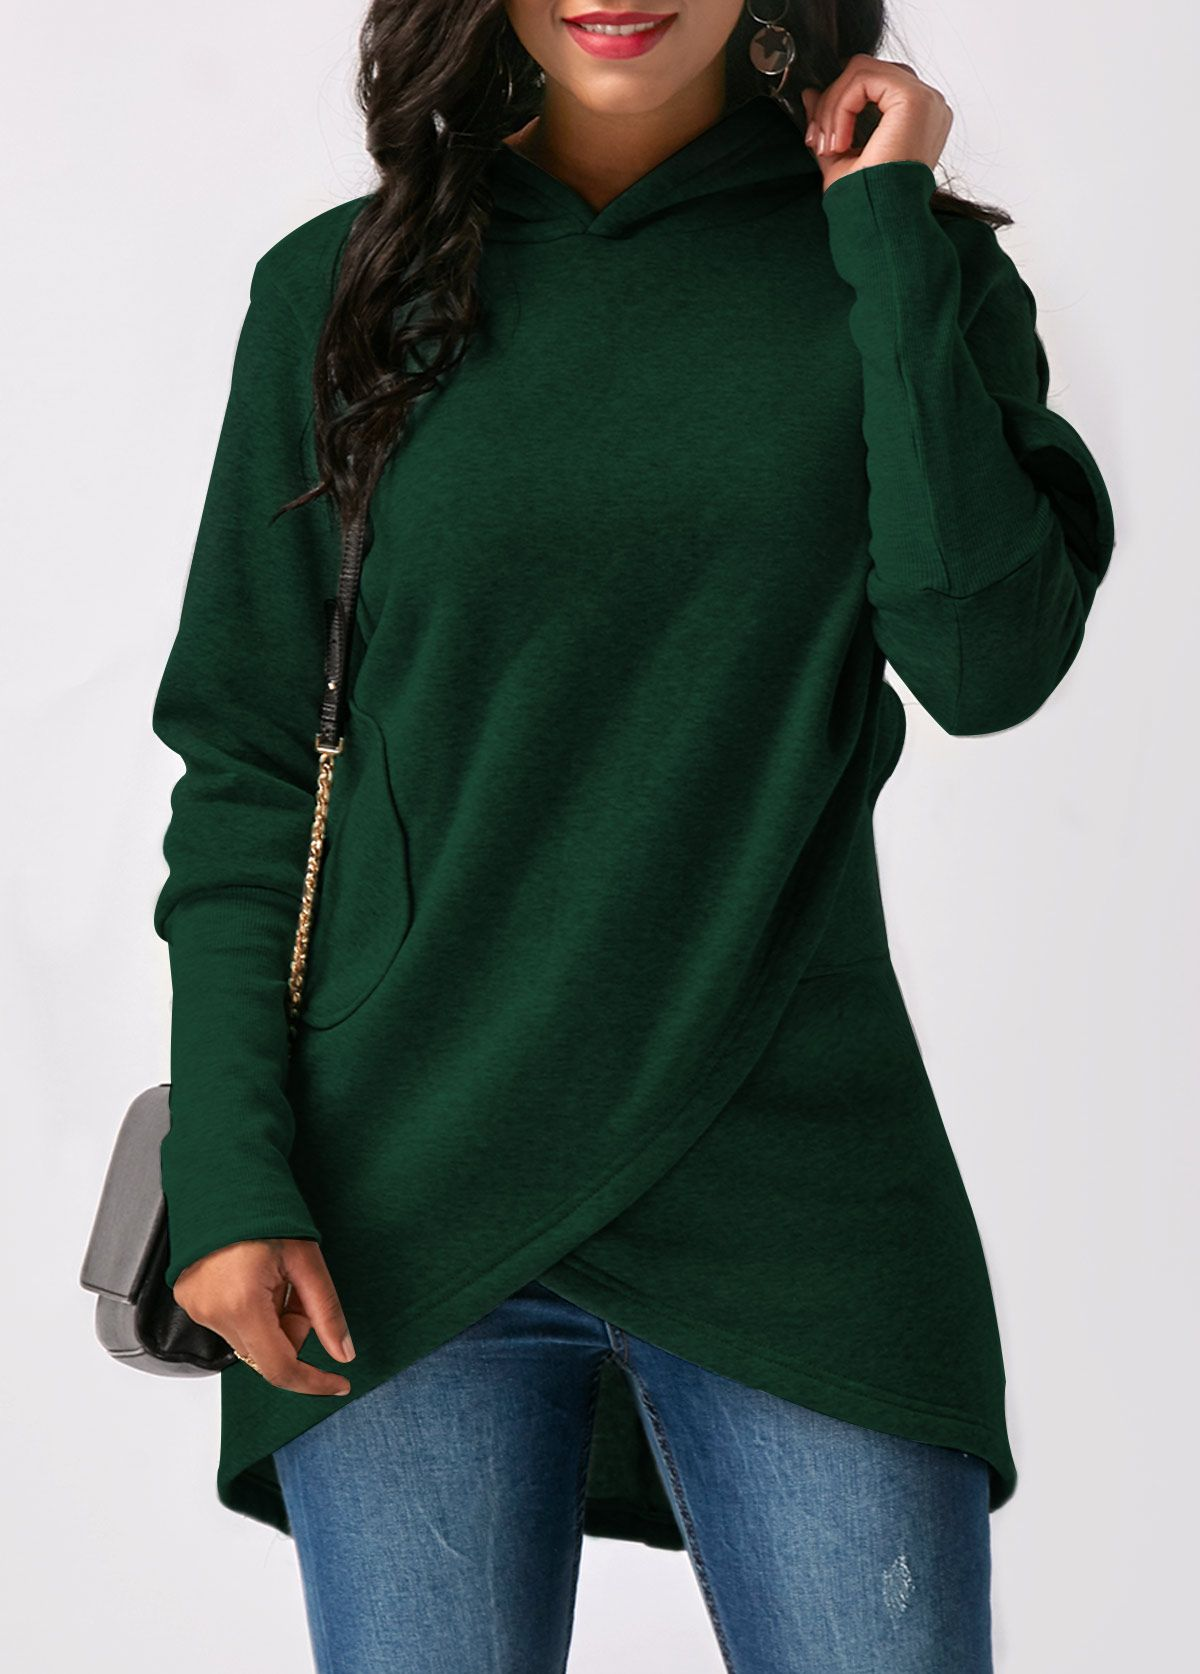 Women Casual Zipper Patchwork Hooded Long Sleeve Pullover Sweatshirt Blouse Tops Womens Blouses Sale Autumn Plus Size Tops UK Size